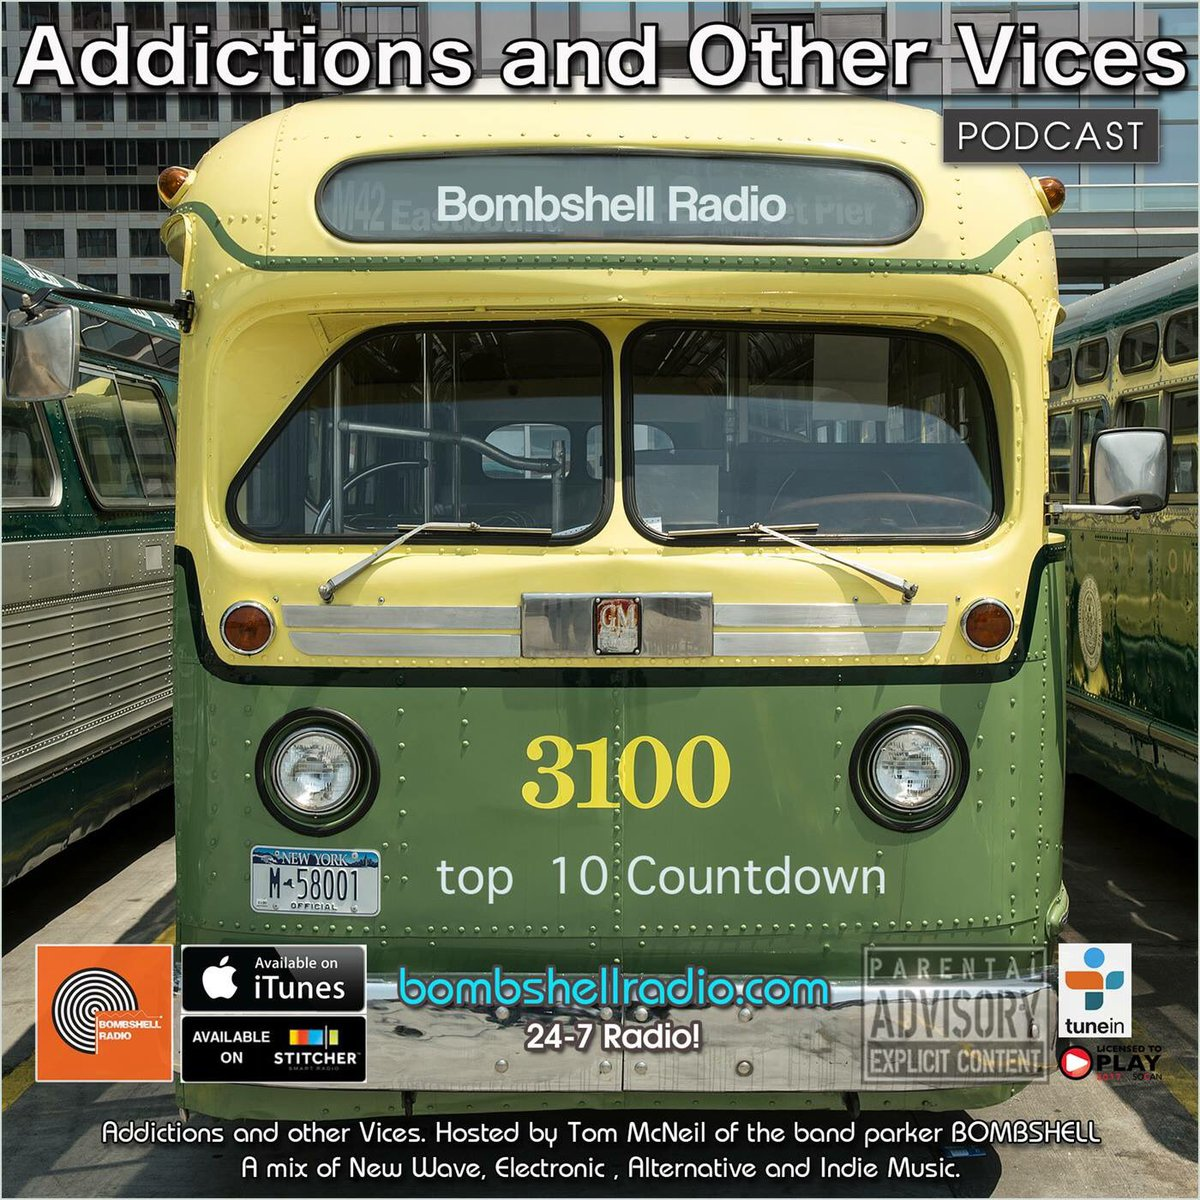 Today&#39;s FIX MIX 401  http:// bombshellradio.com  &nbsp;    @AddictionsDJ @TheReplacements @System_Corp The Subliminal&#39;s @TheClash @FastRomantics #radio <br>http://pic.twitter.com/0hFSq4FPUN